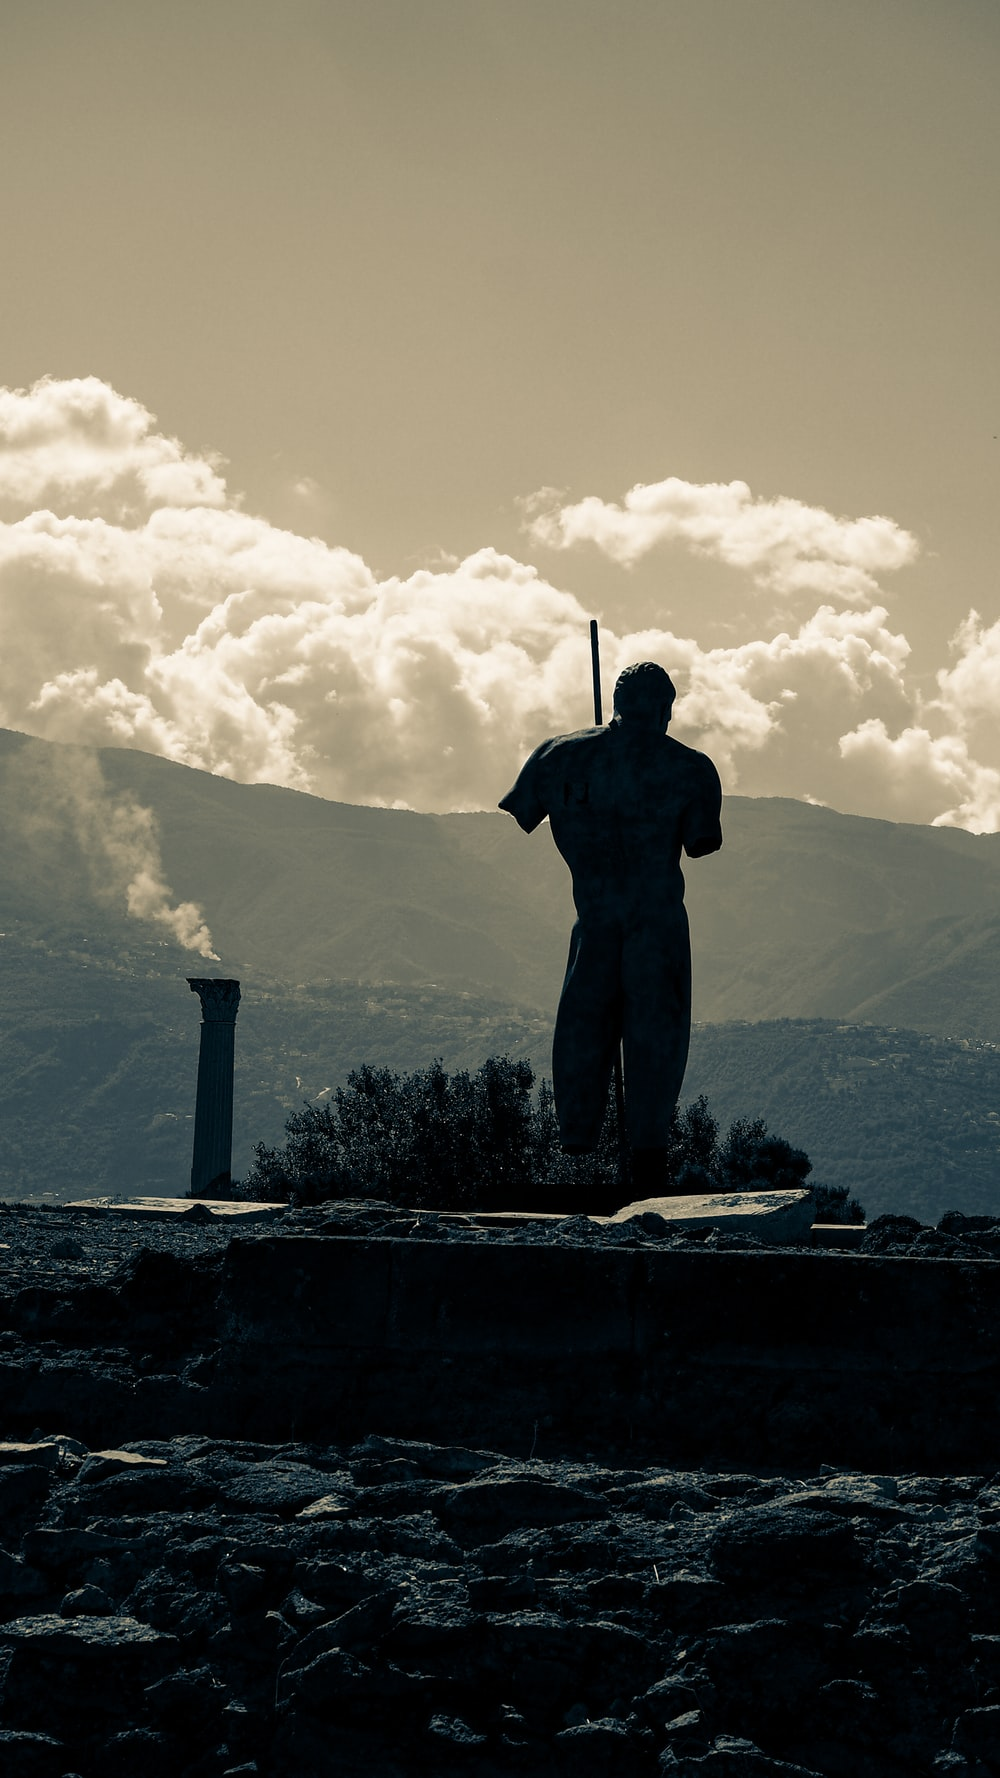 silhouette of man standing on concrete wall near mountain under cloudy sky during daytime